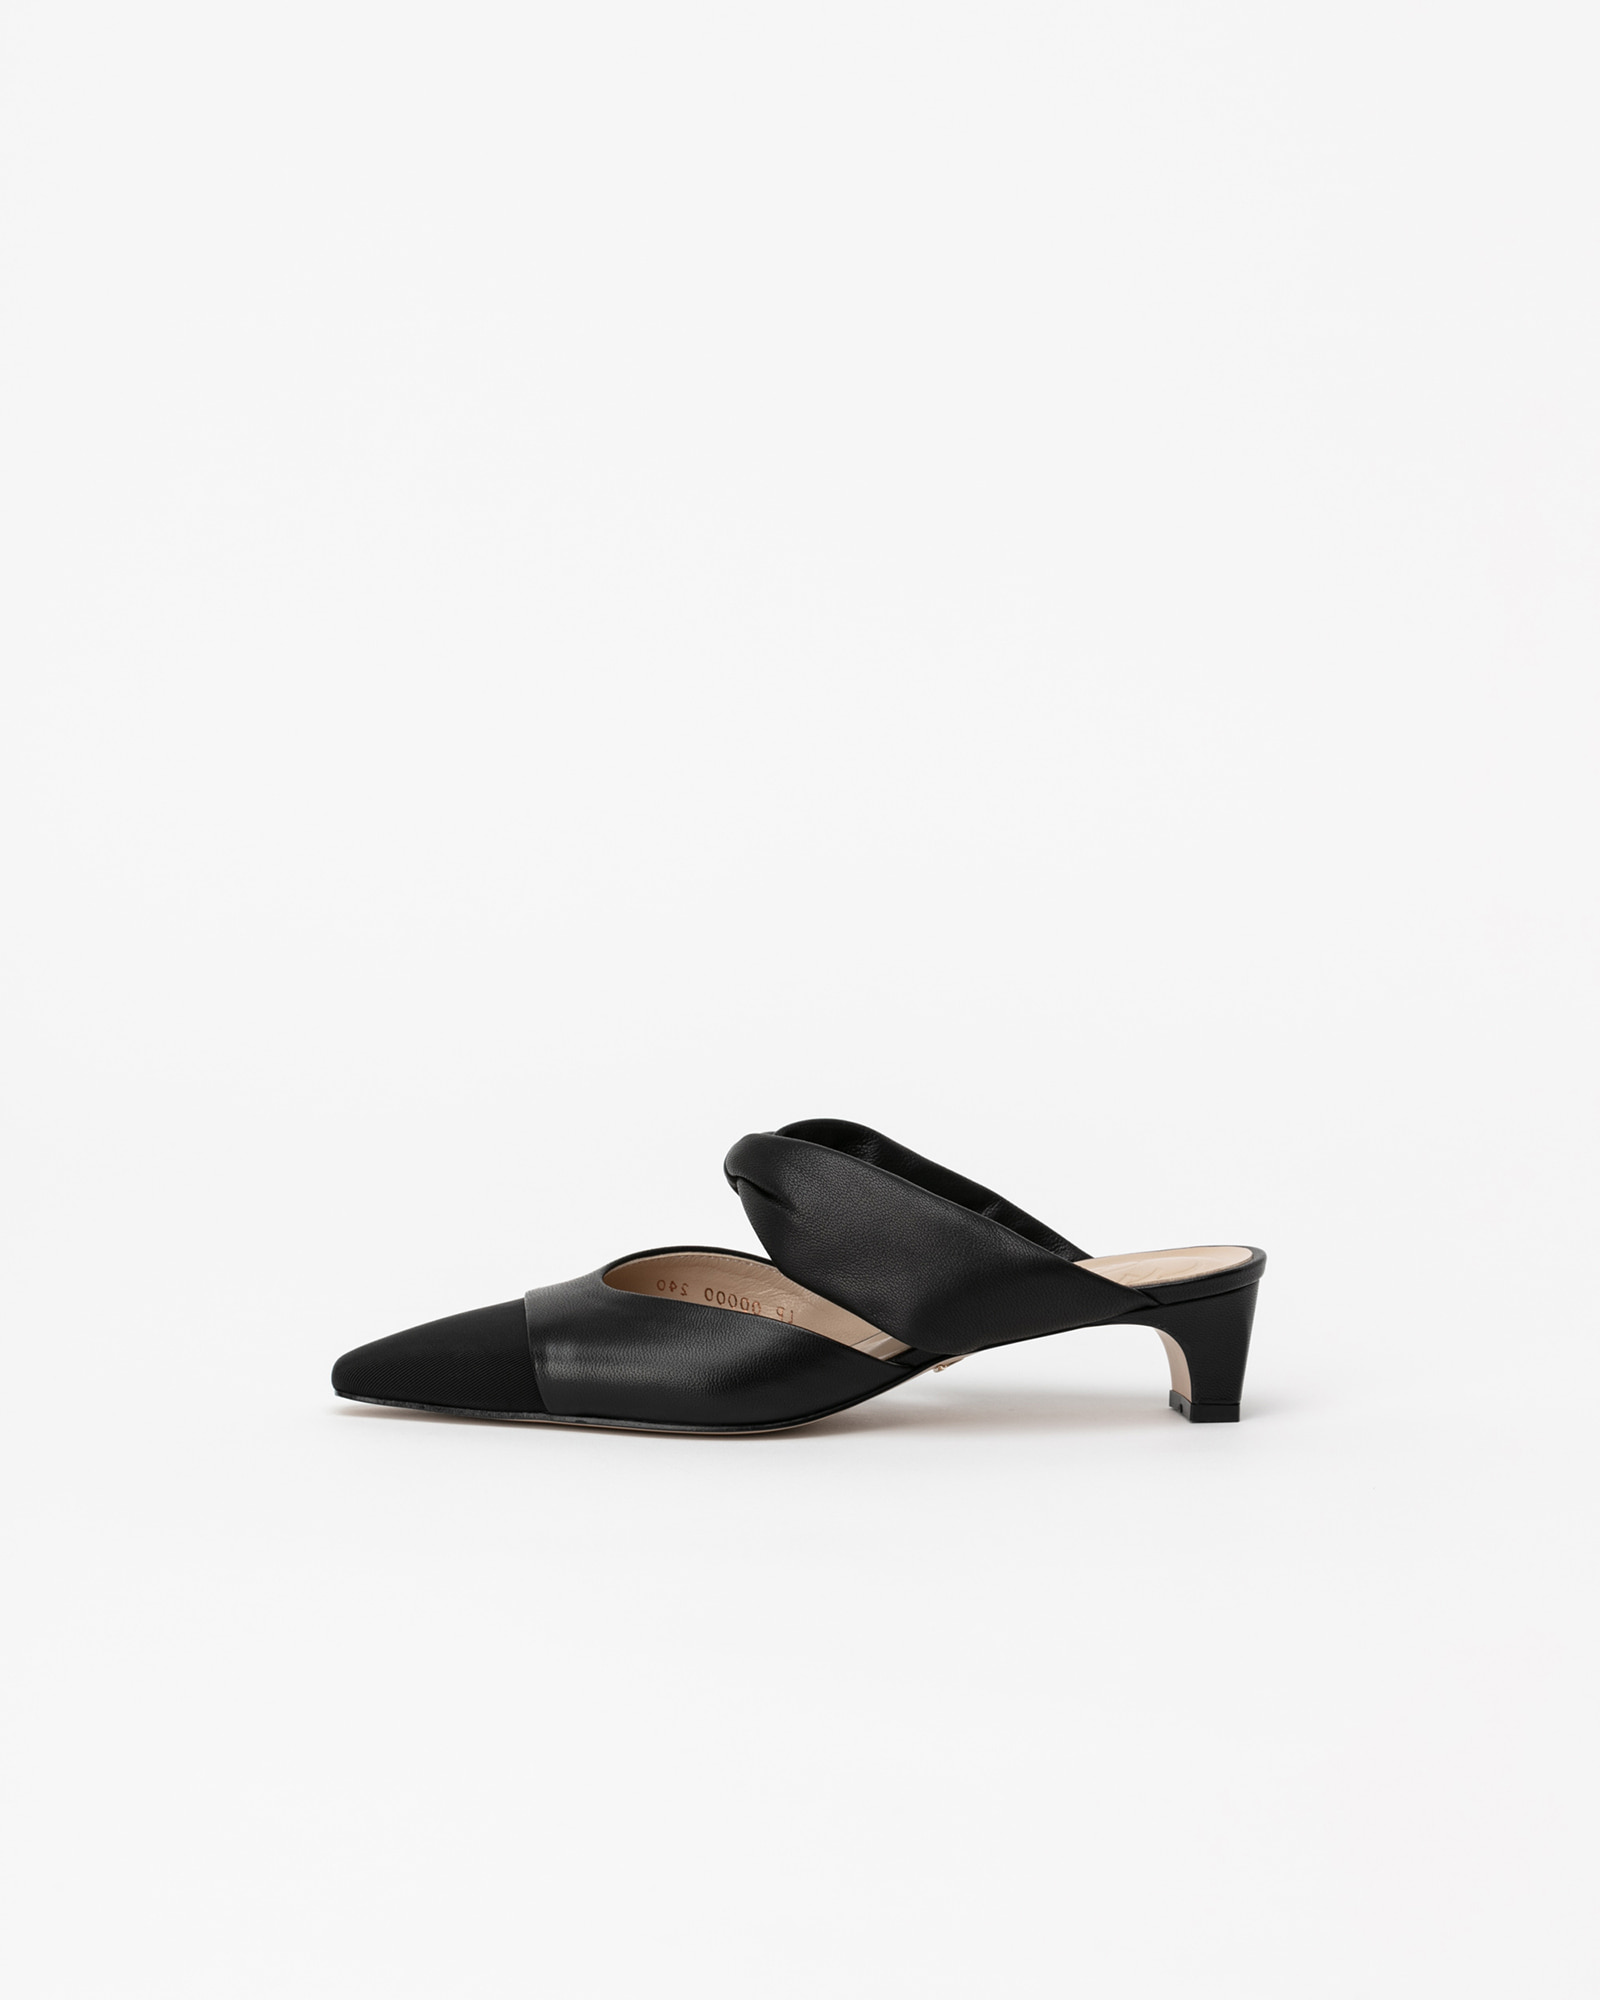 Zena Soft Mules in Black with Black Toe